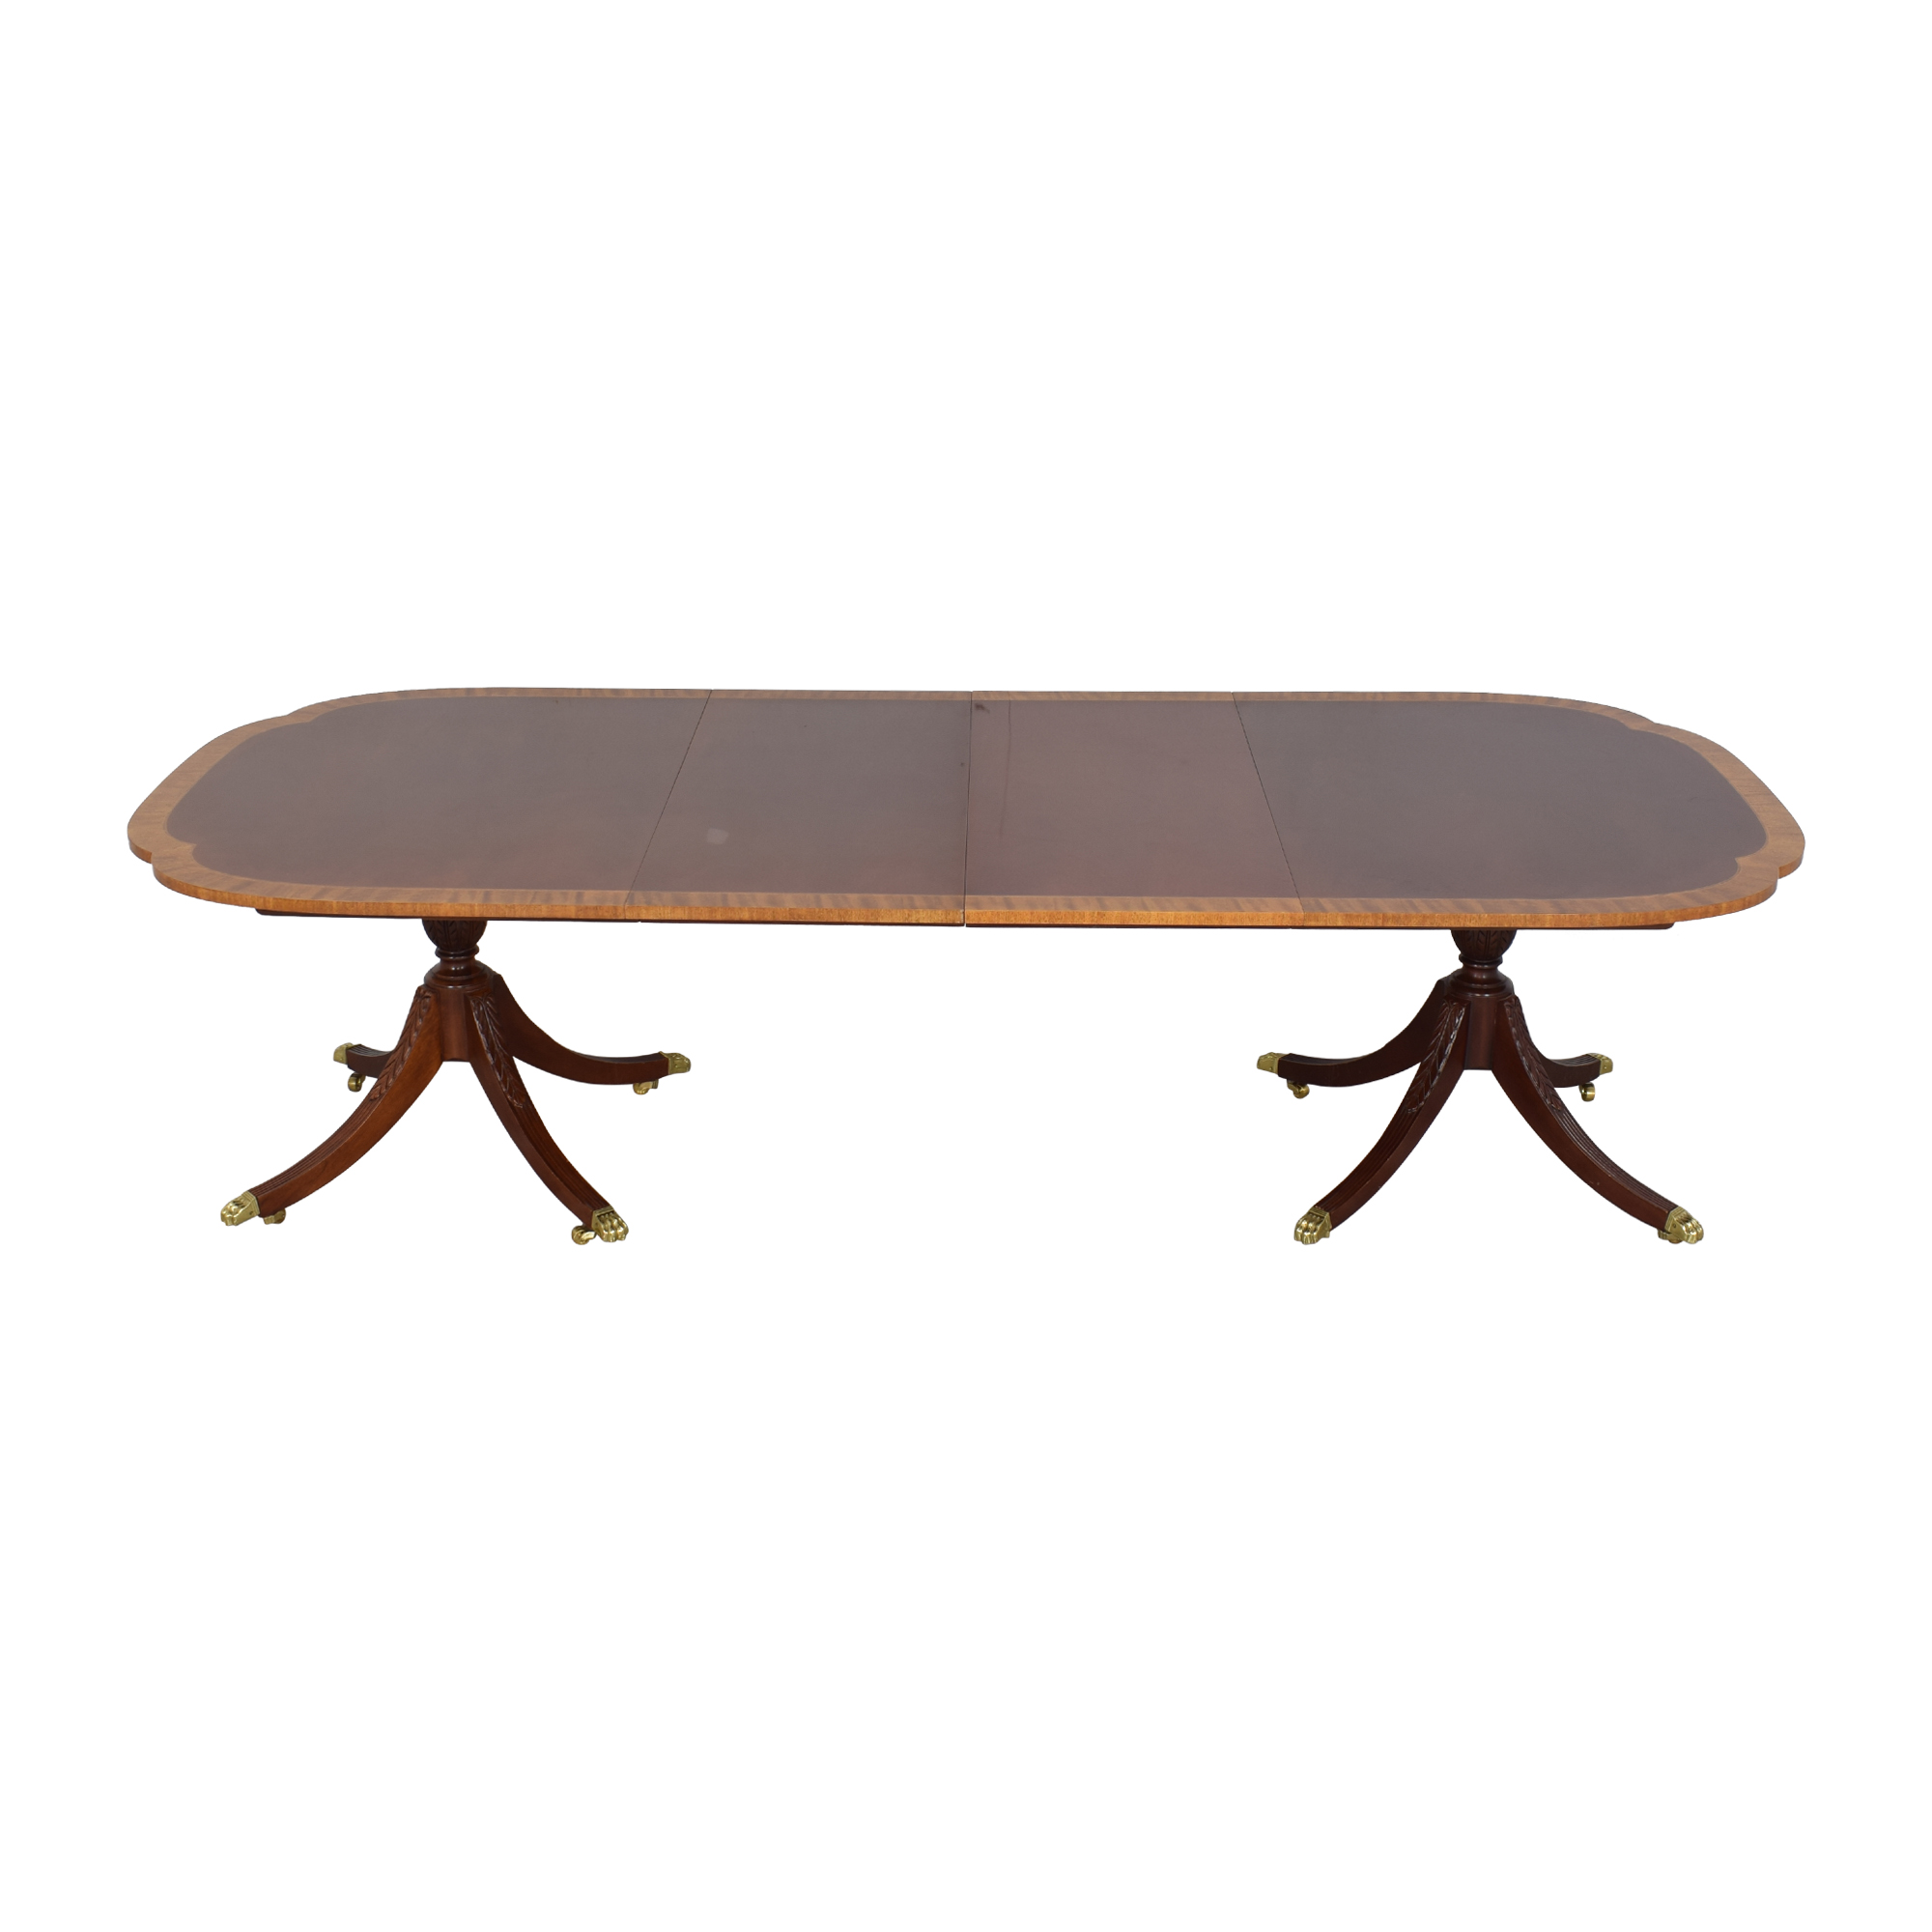 Councill Craftsman Banded Top Dining Table / Dinner Tables